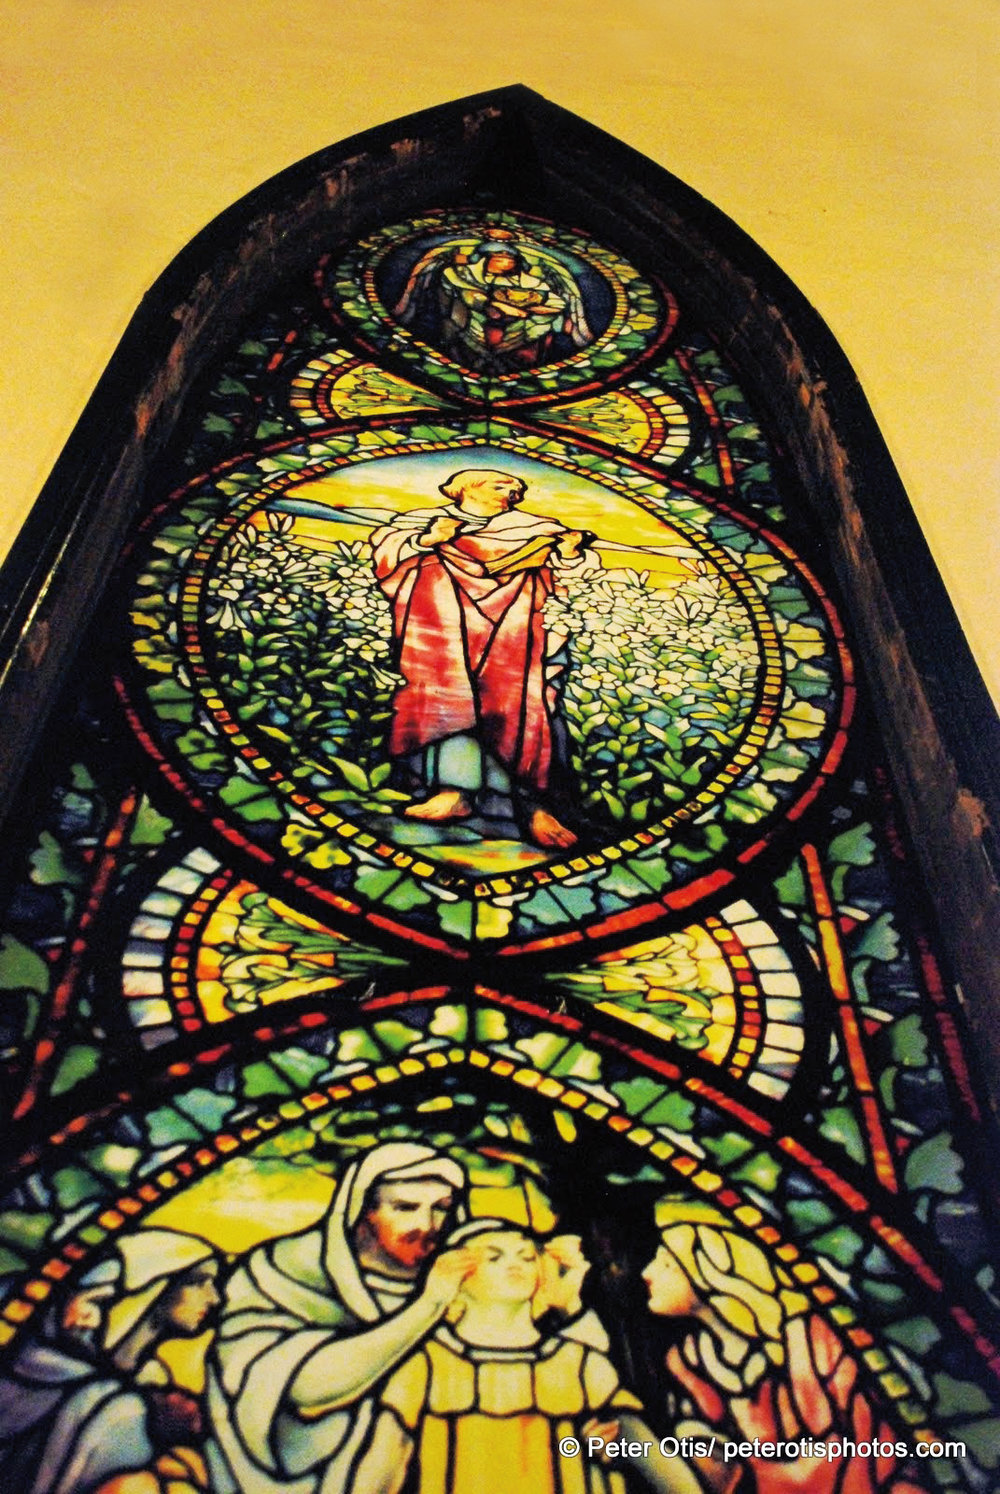 1965 Peter Otis stain glass window photo.jpg